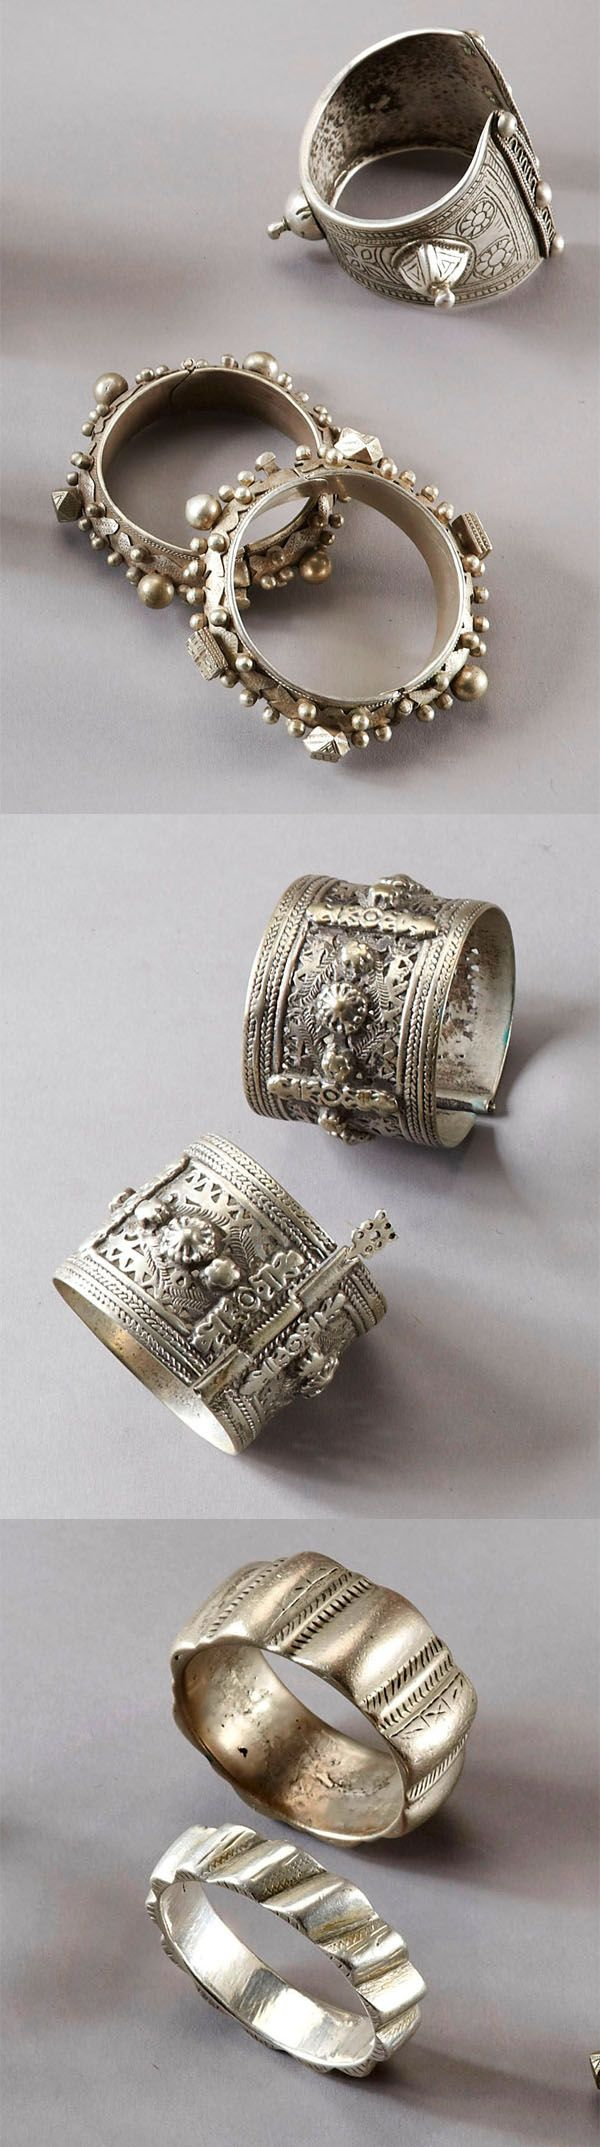 Collection of seven silver bracelets from North Africa | Est. 648. - Get the most out of buying your jewelry! Find out how at http://jewelrytipsnow.com/how-to-make-the-most-out-of-buying-your-jewelry/